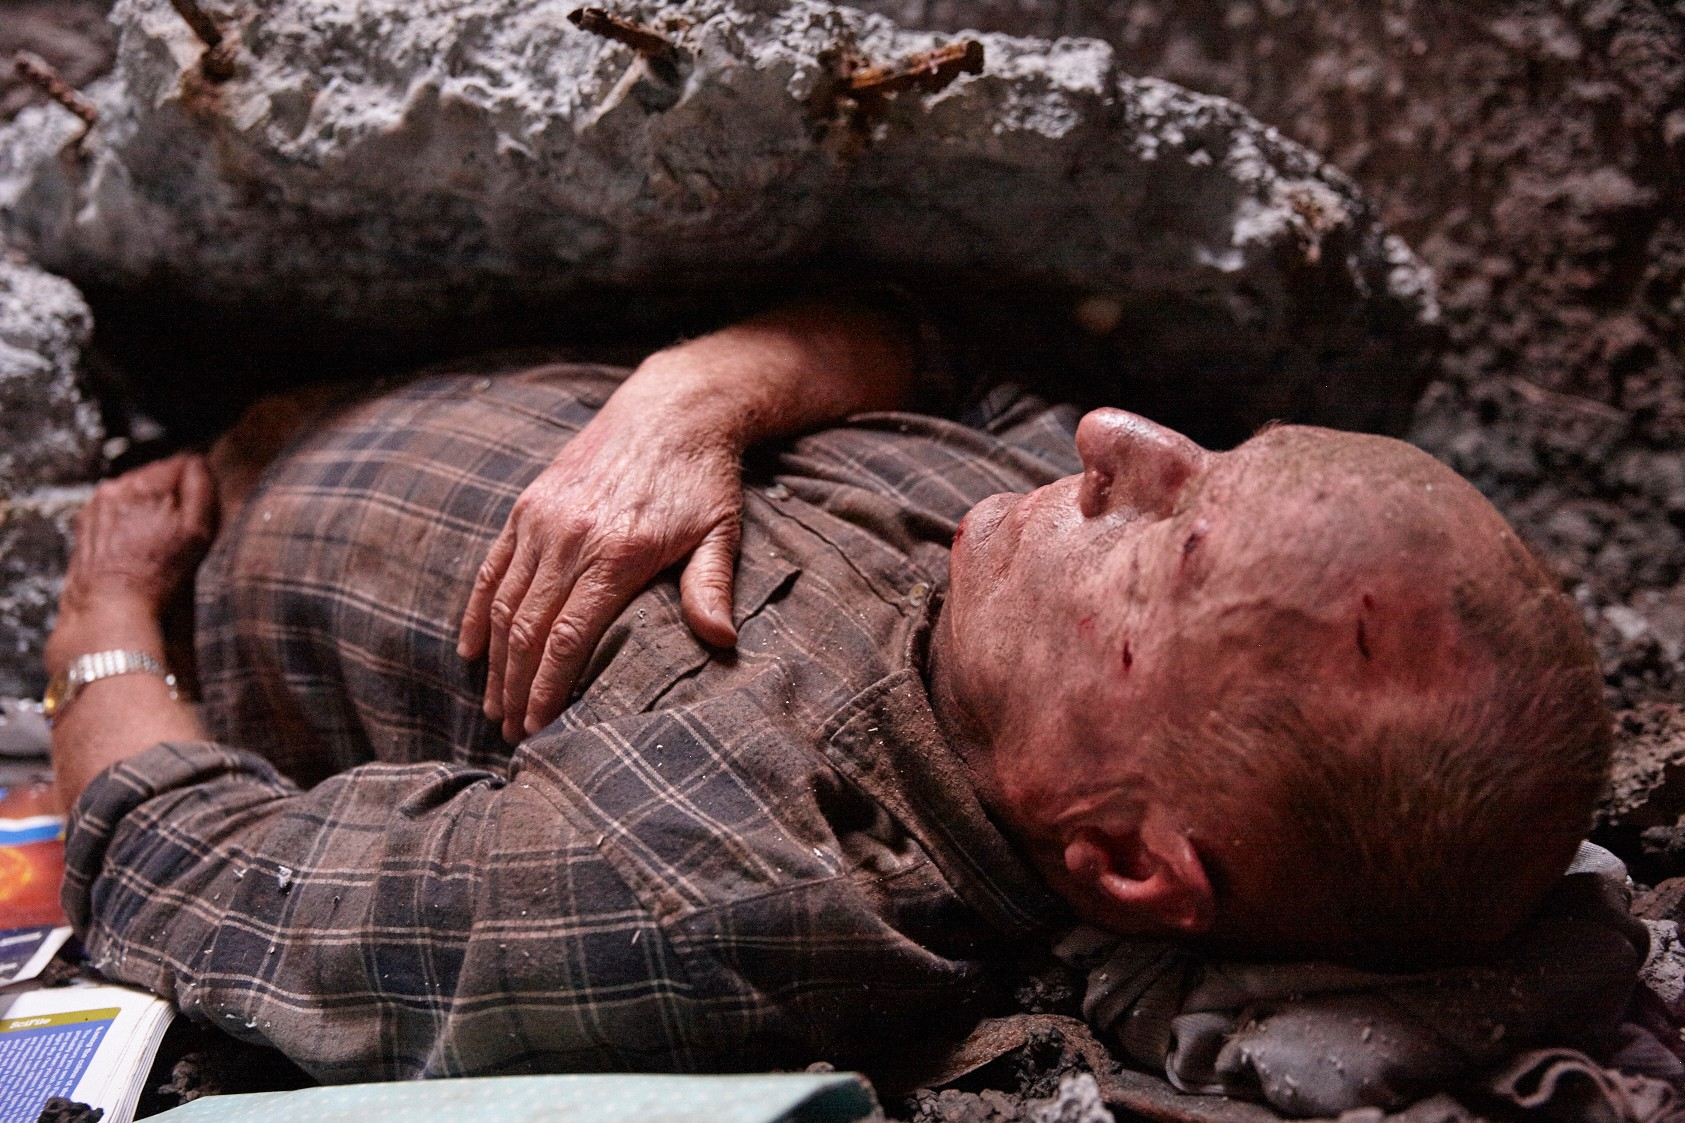 Home & Away Week 5 - Alf trapped in a sinkhole. **EMBARGO Monday, 5th February**